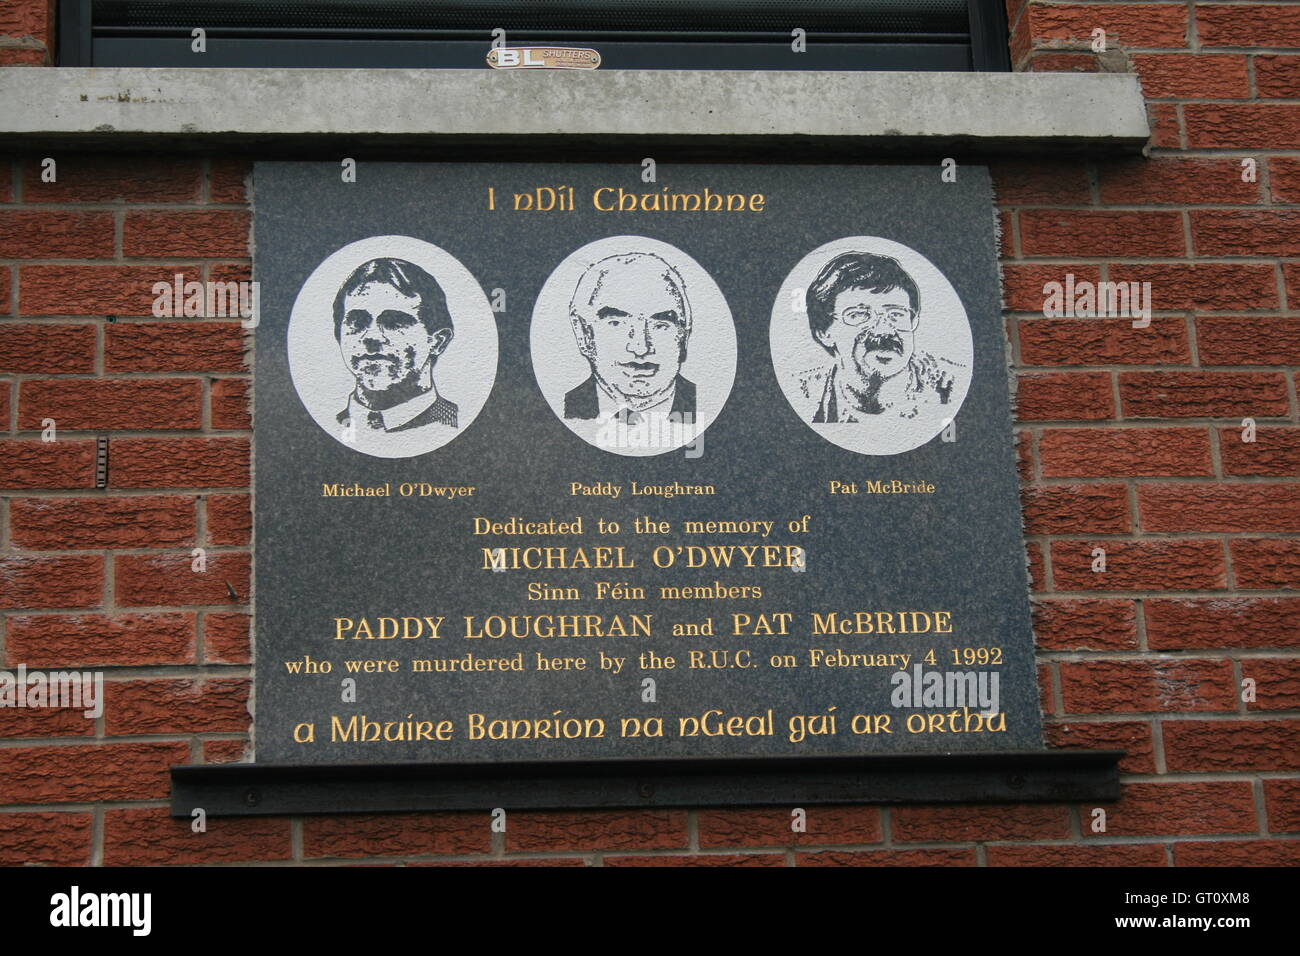 Memorial plaque to Michael O'dwyer, Paddy Loughran and Pat Mc'Bride, Belfast, Northern Ireland, UK. - Stock Image